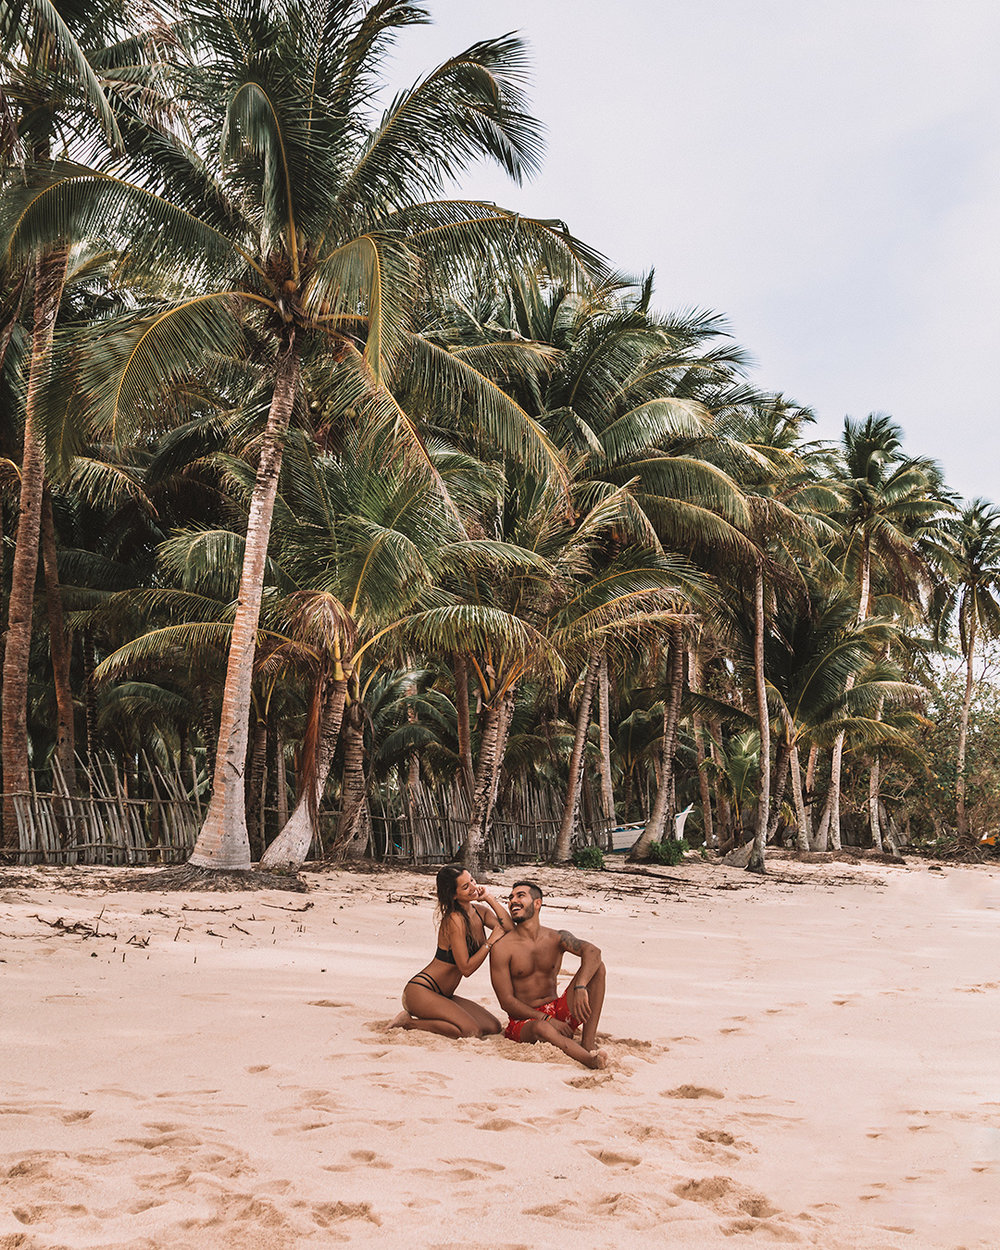 Siargao living the ultimate island life Philippines tropical destination palm tree beach beautiful places travel guideAlegria Beach most beautiful beach in Siargao